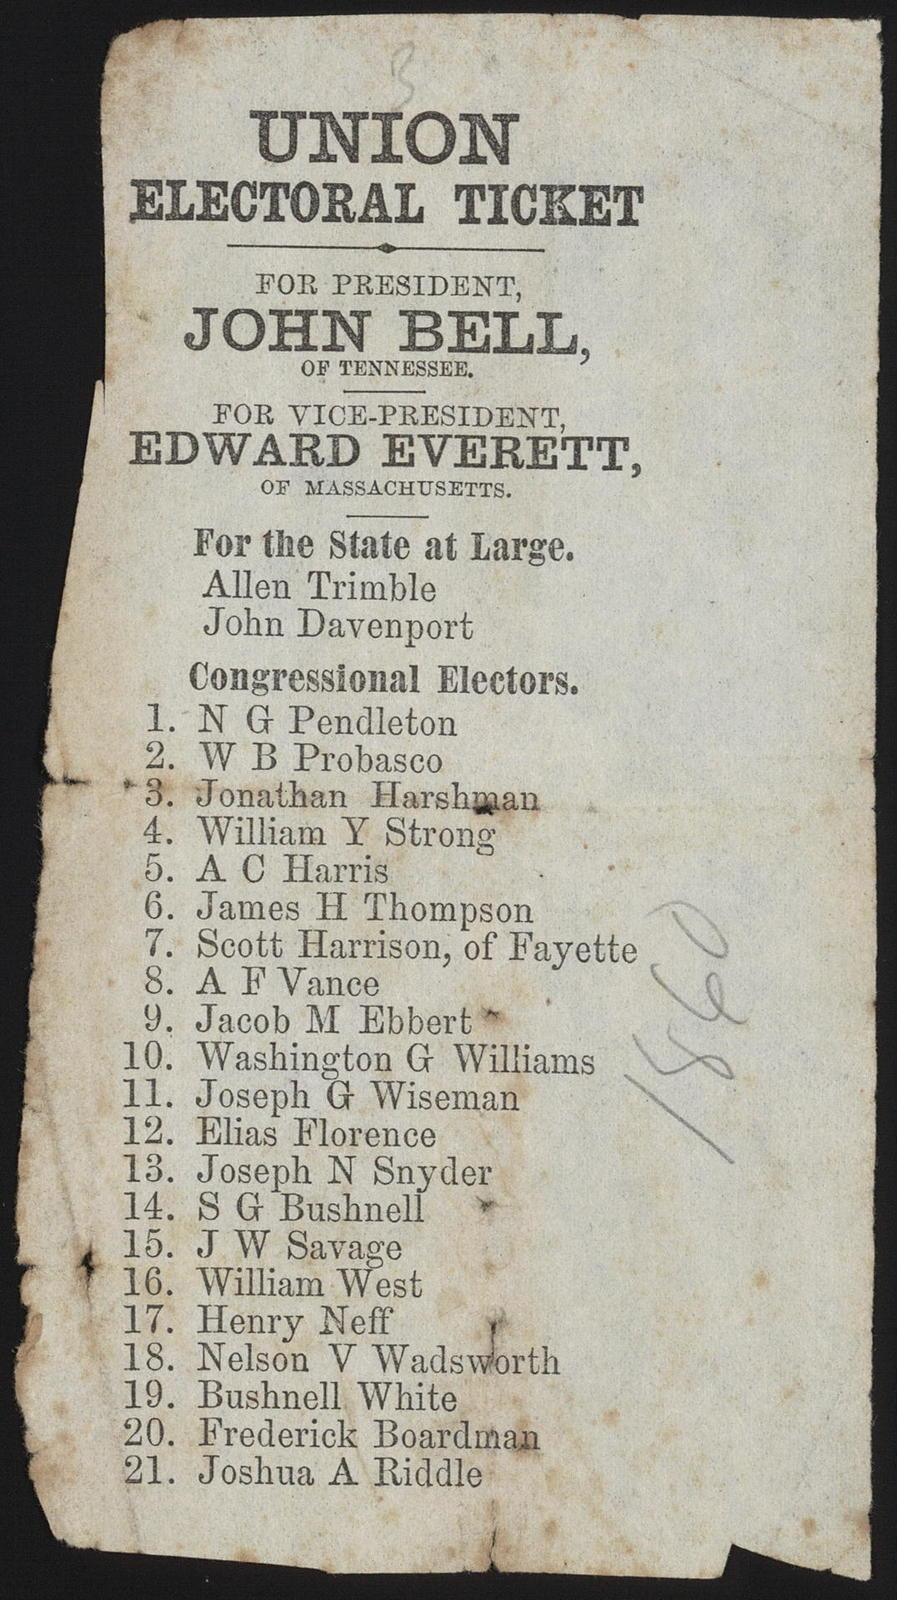 Union electoral ticket. For President, John Bell, of Tennessee. For Vice-President, Edward Everett, of Massachusetts. [Ohio campaign ticket]